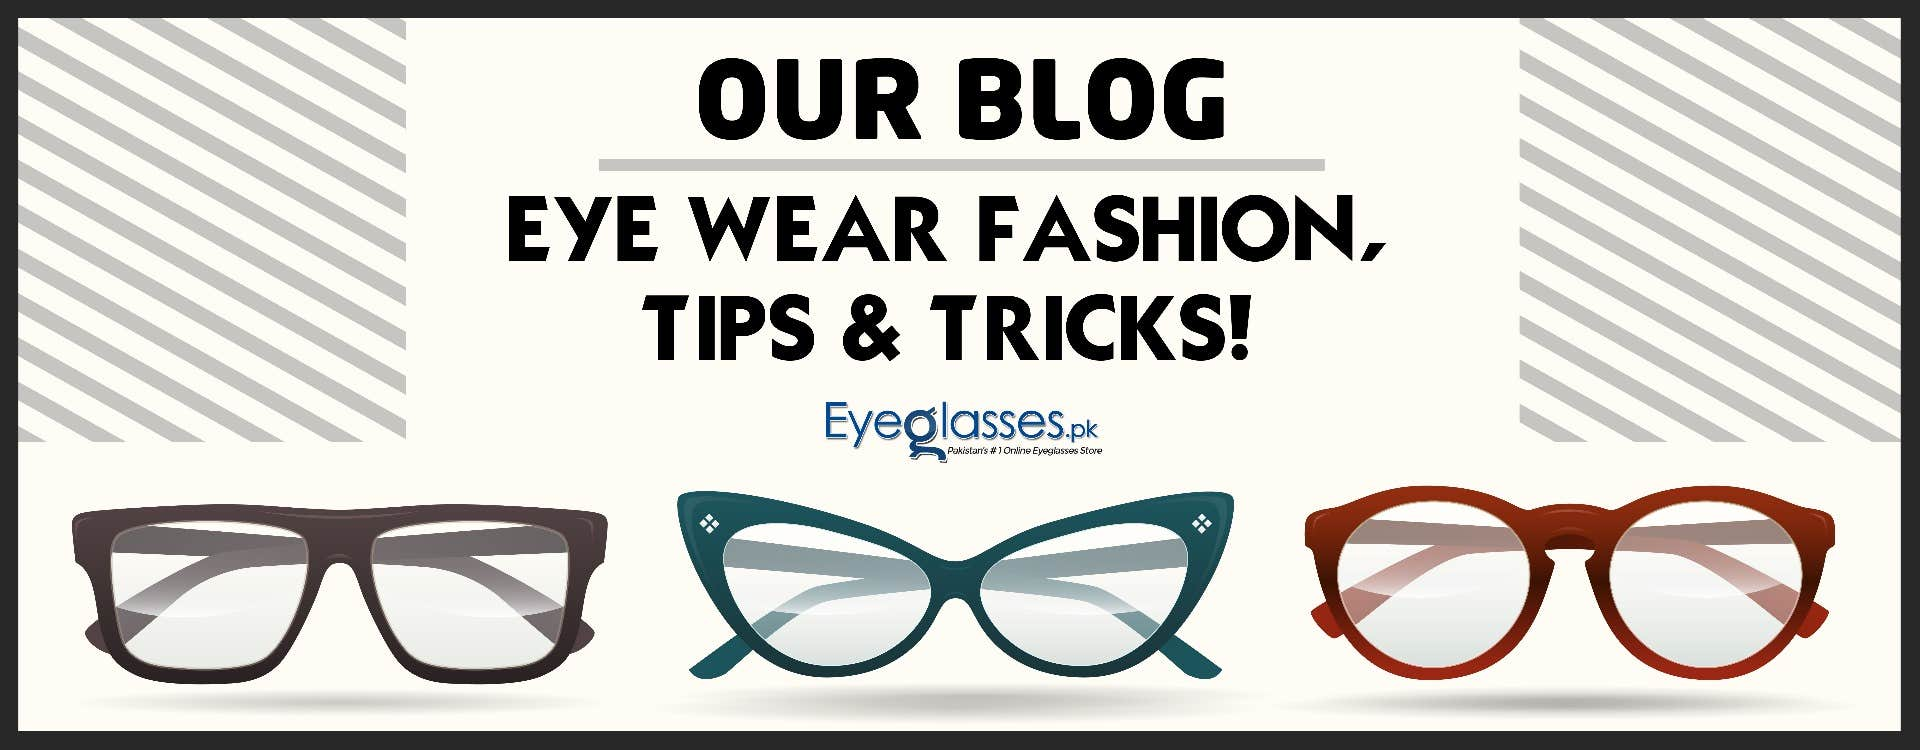 Our Blog - Eye Wear Fashion, Tips & Tricks!